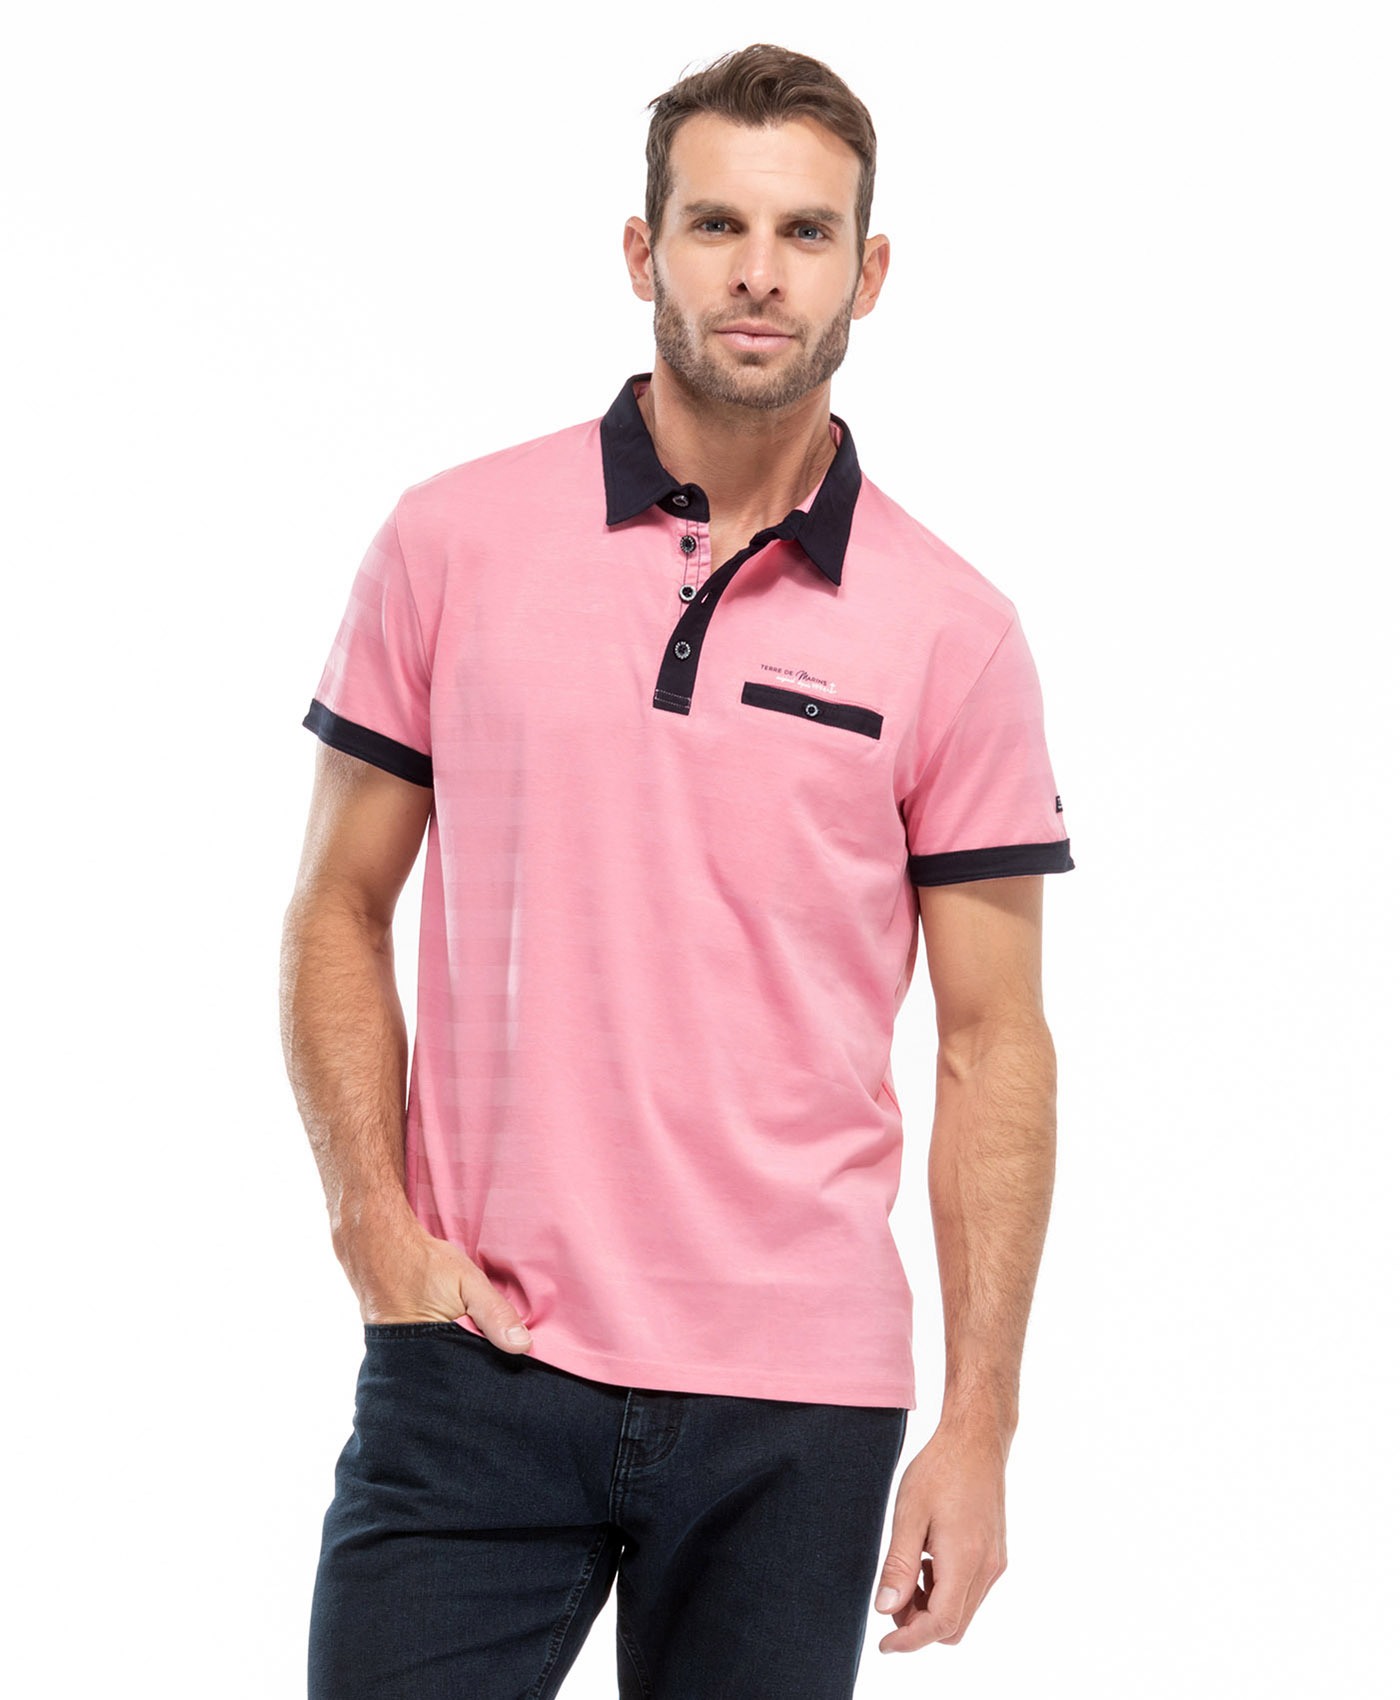 Polo rose homme - Mode marine Homme